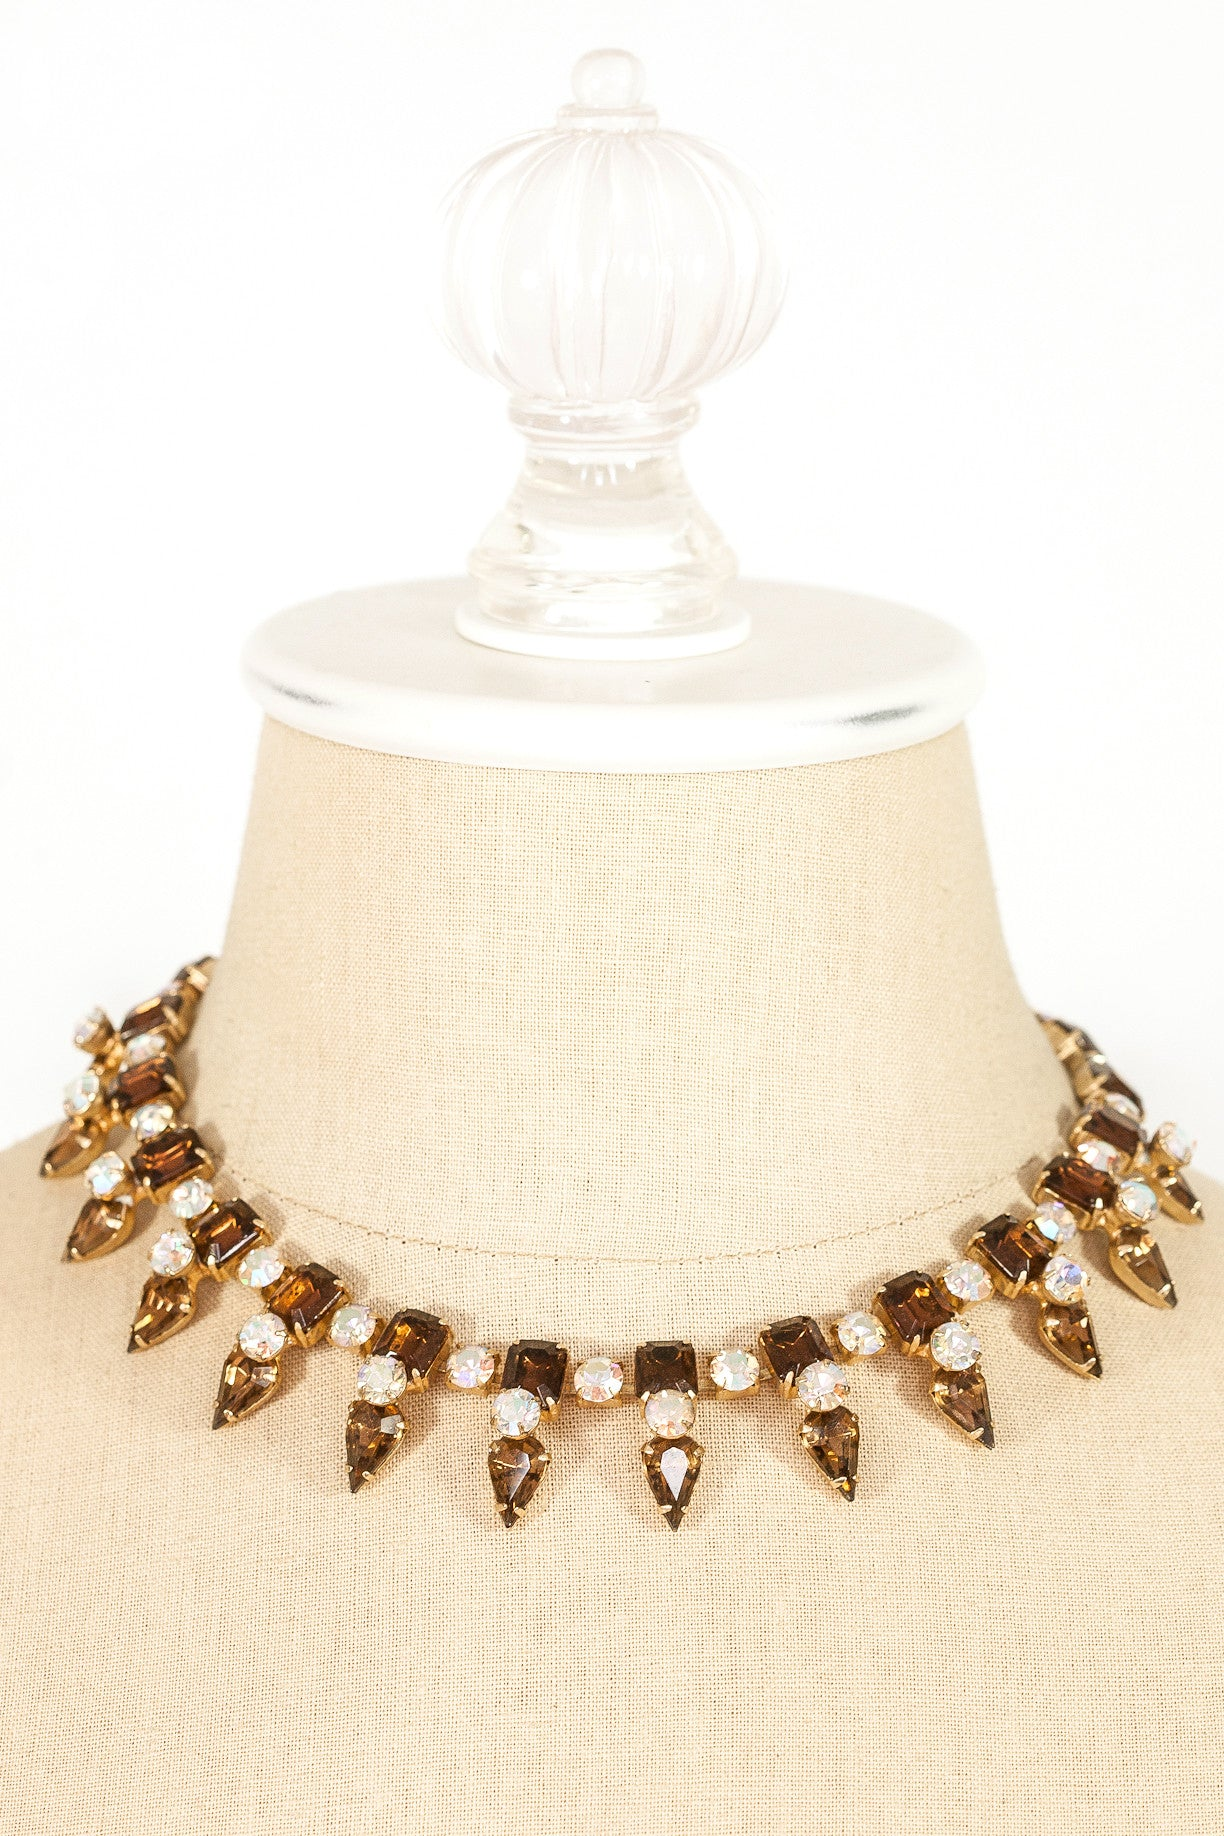 60's__Vintage__Amber Rhinestone Spike Necklace